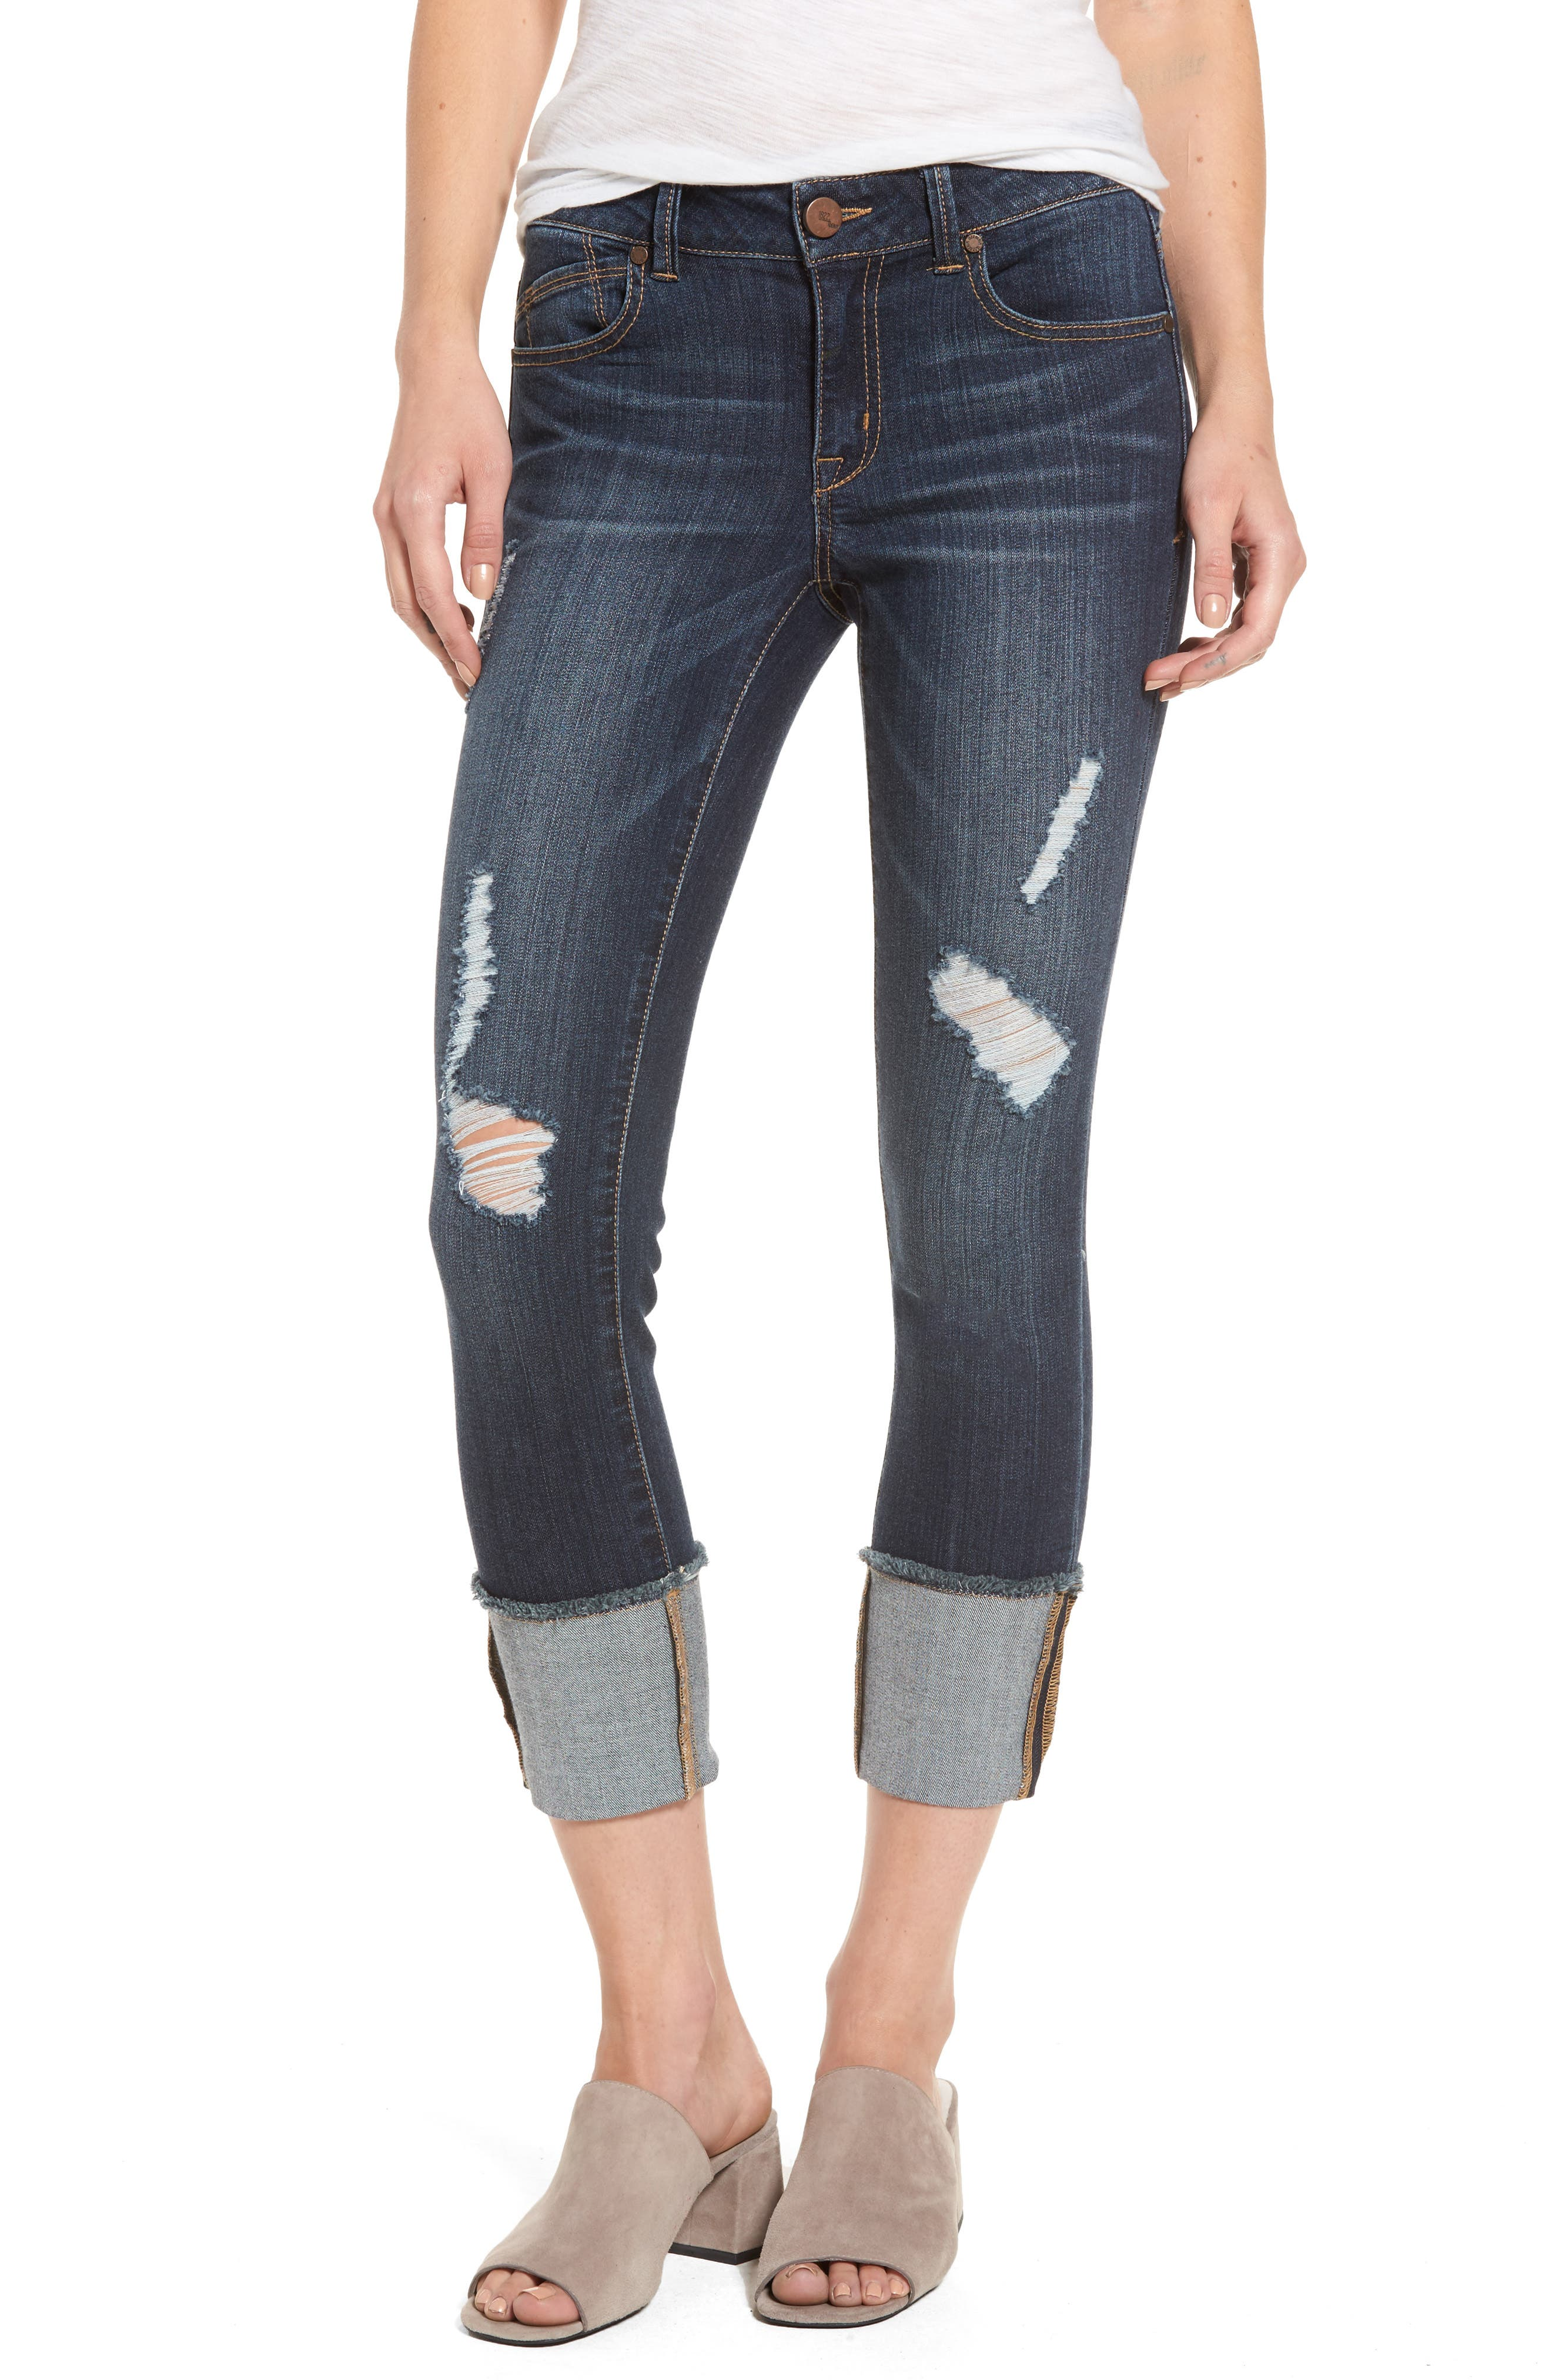 Alternate Image 1 Selected - 1822 Denim Distressed Roll Cuff Jeans (Hazel)